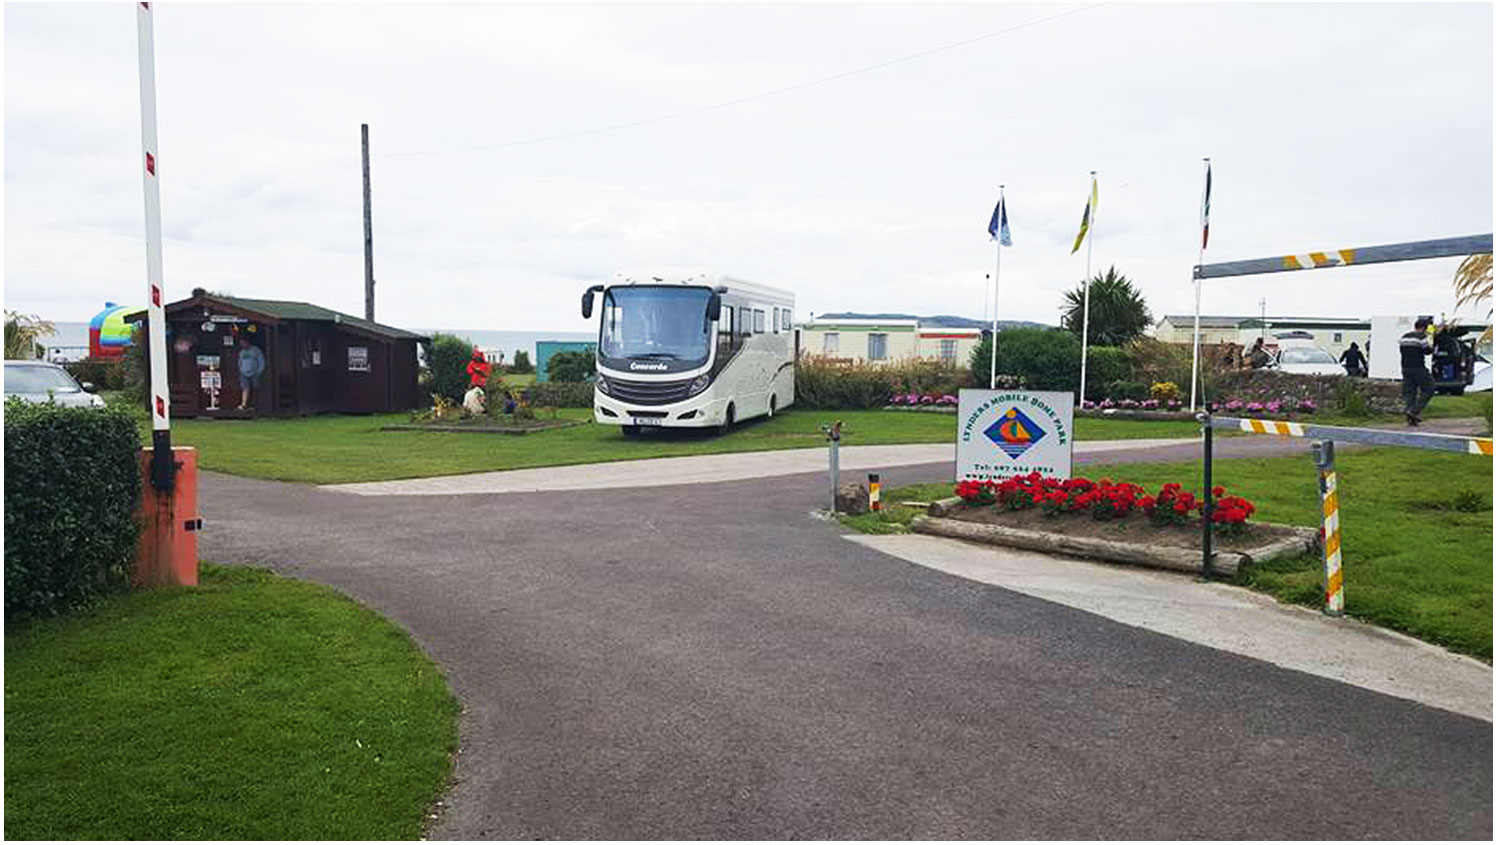 Front-Entrance-Camping, Campervans, Motorhomes - Lynders Mobile Home Park, Portrane:Donabate, North County Dublin, Fingal